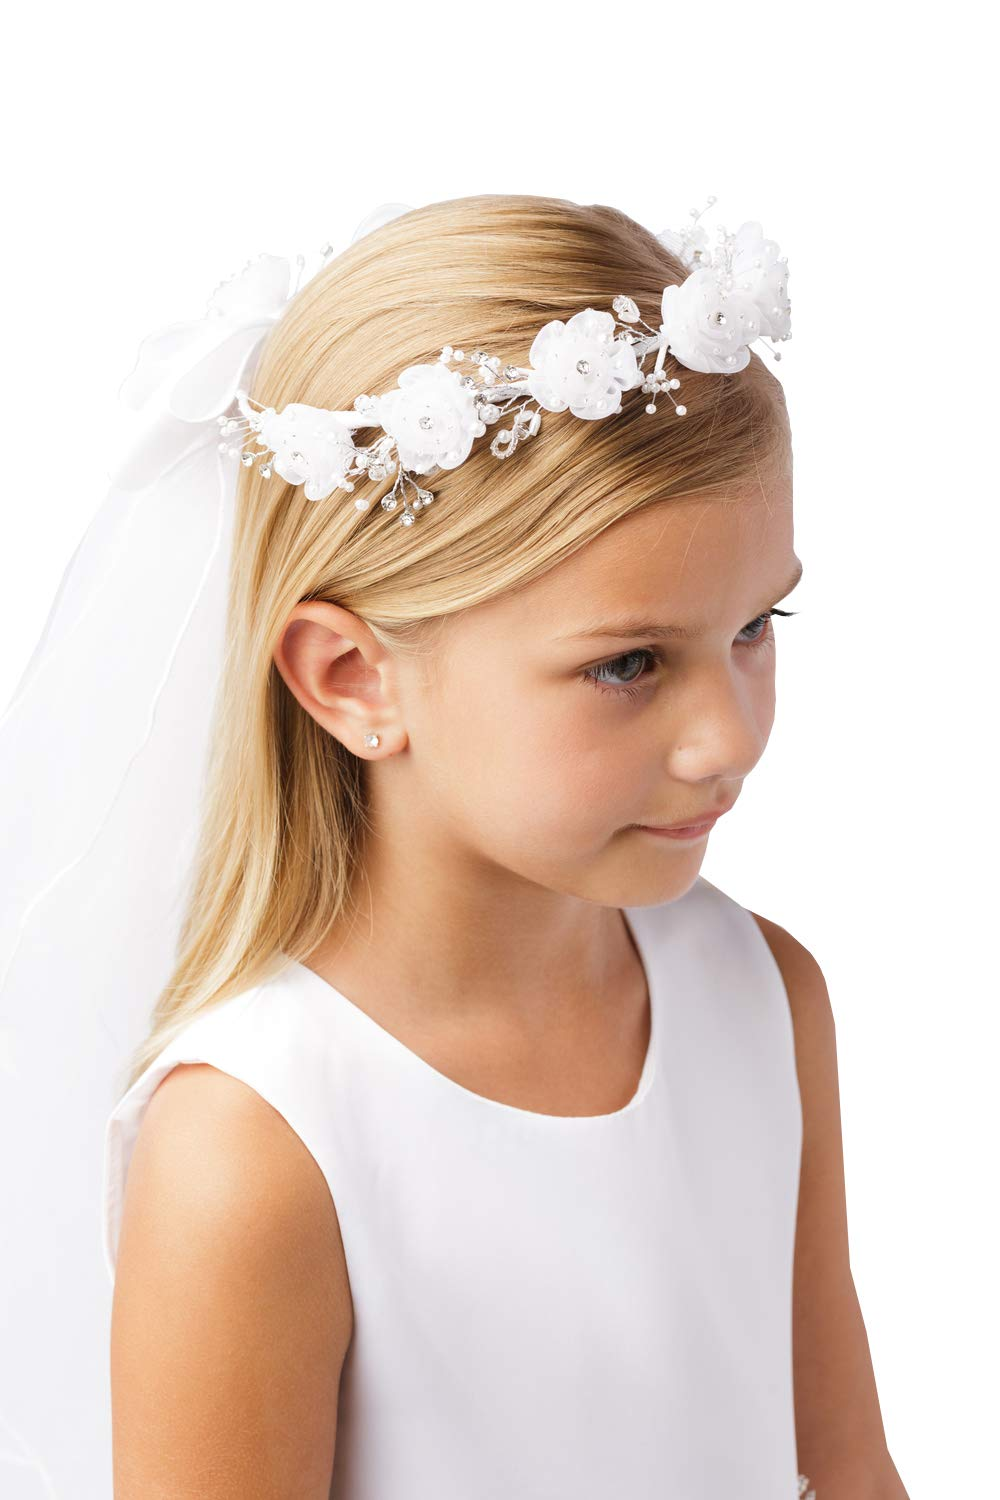 Girls White Pearl Rhinestone Center Floral Crown First Communion Flower Girl Head Wreath with Veil #779